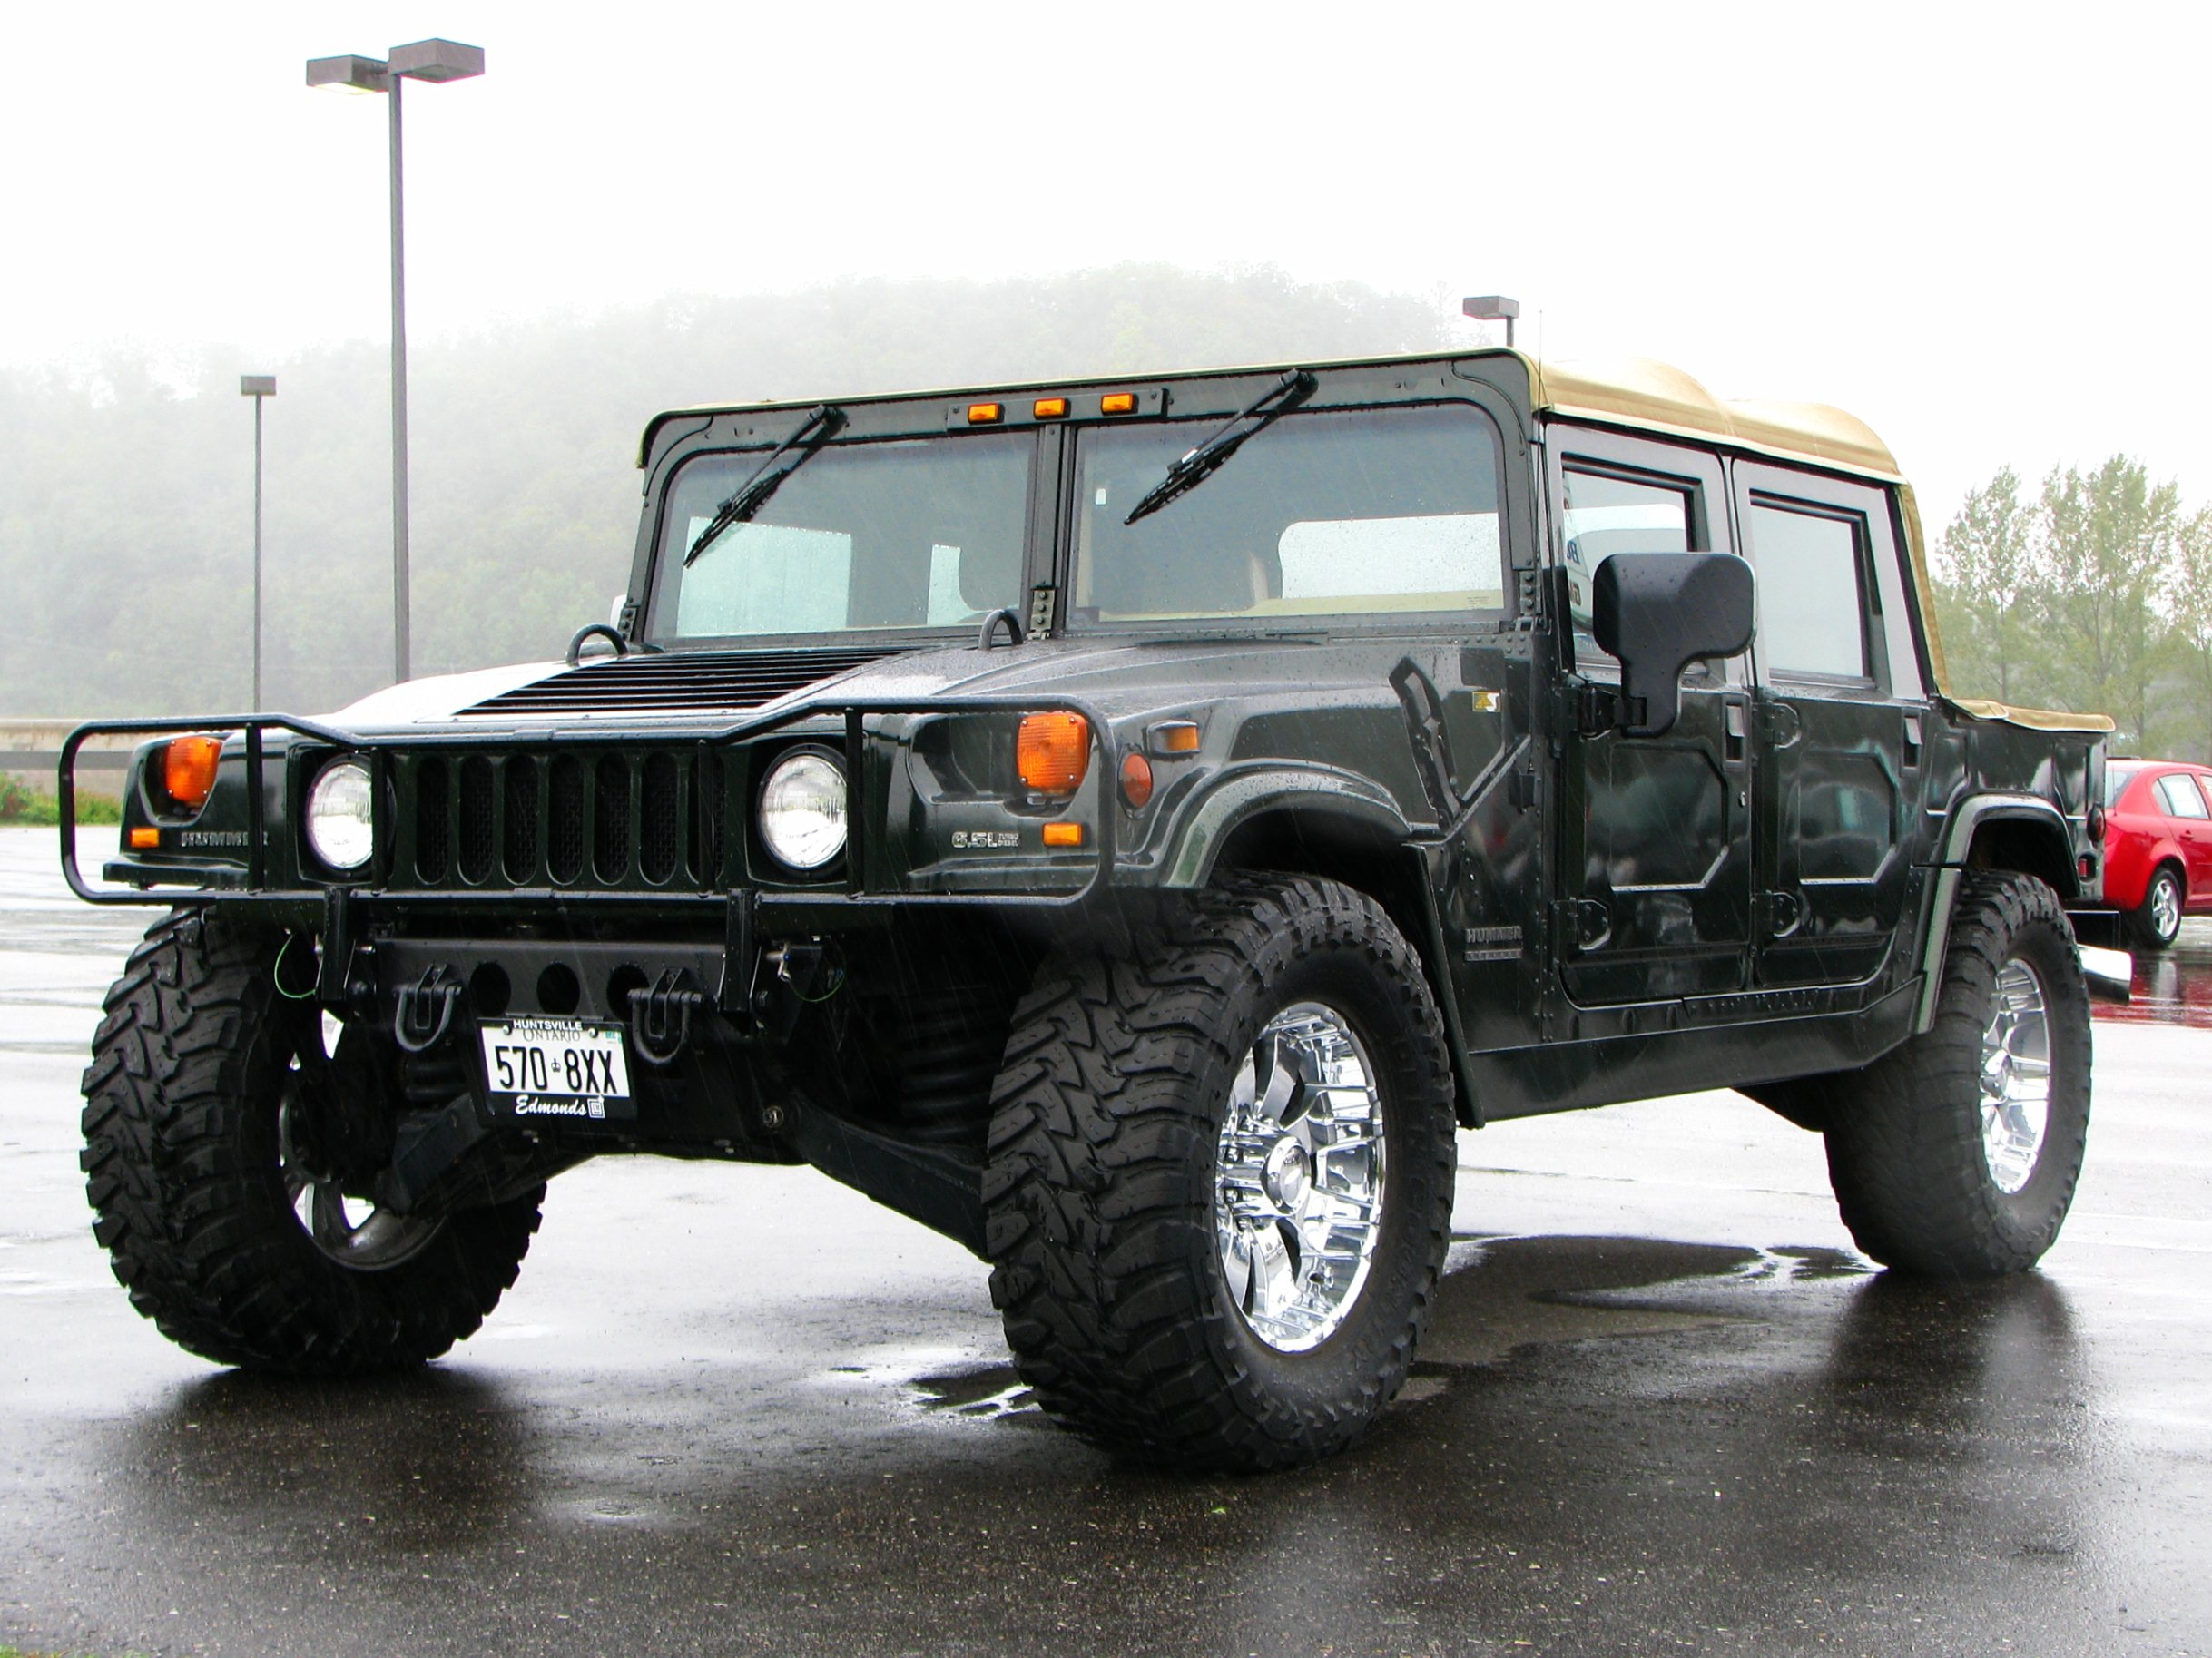 Hummer (H1) Convertible | Flickr - Photo Sharing!